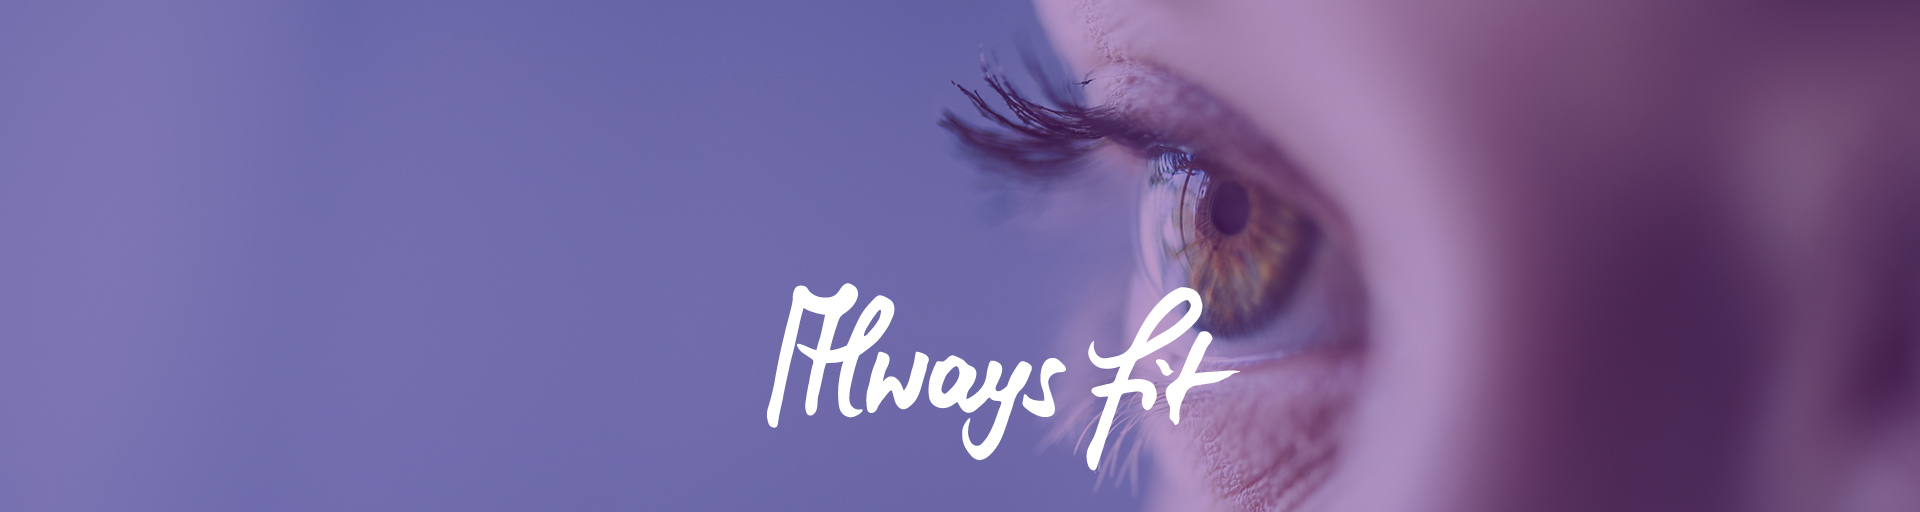 Sinne schaerfen mit Always fit